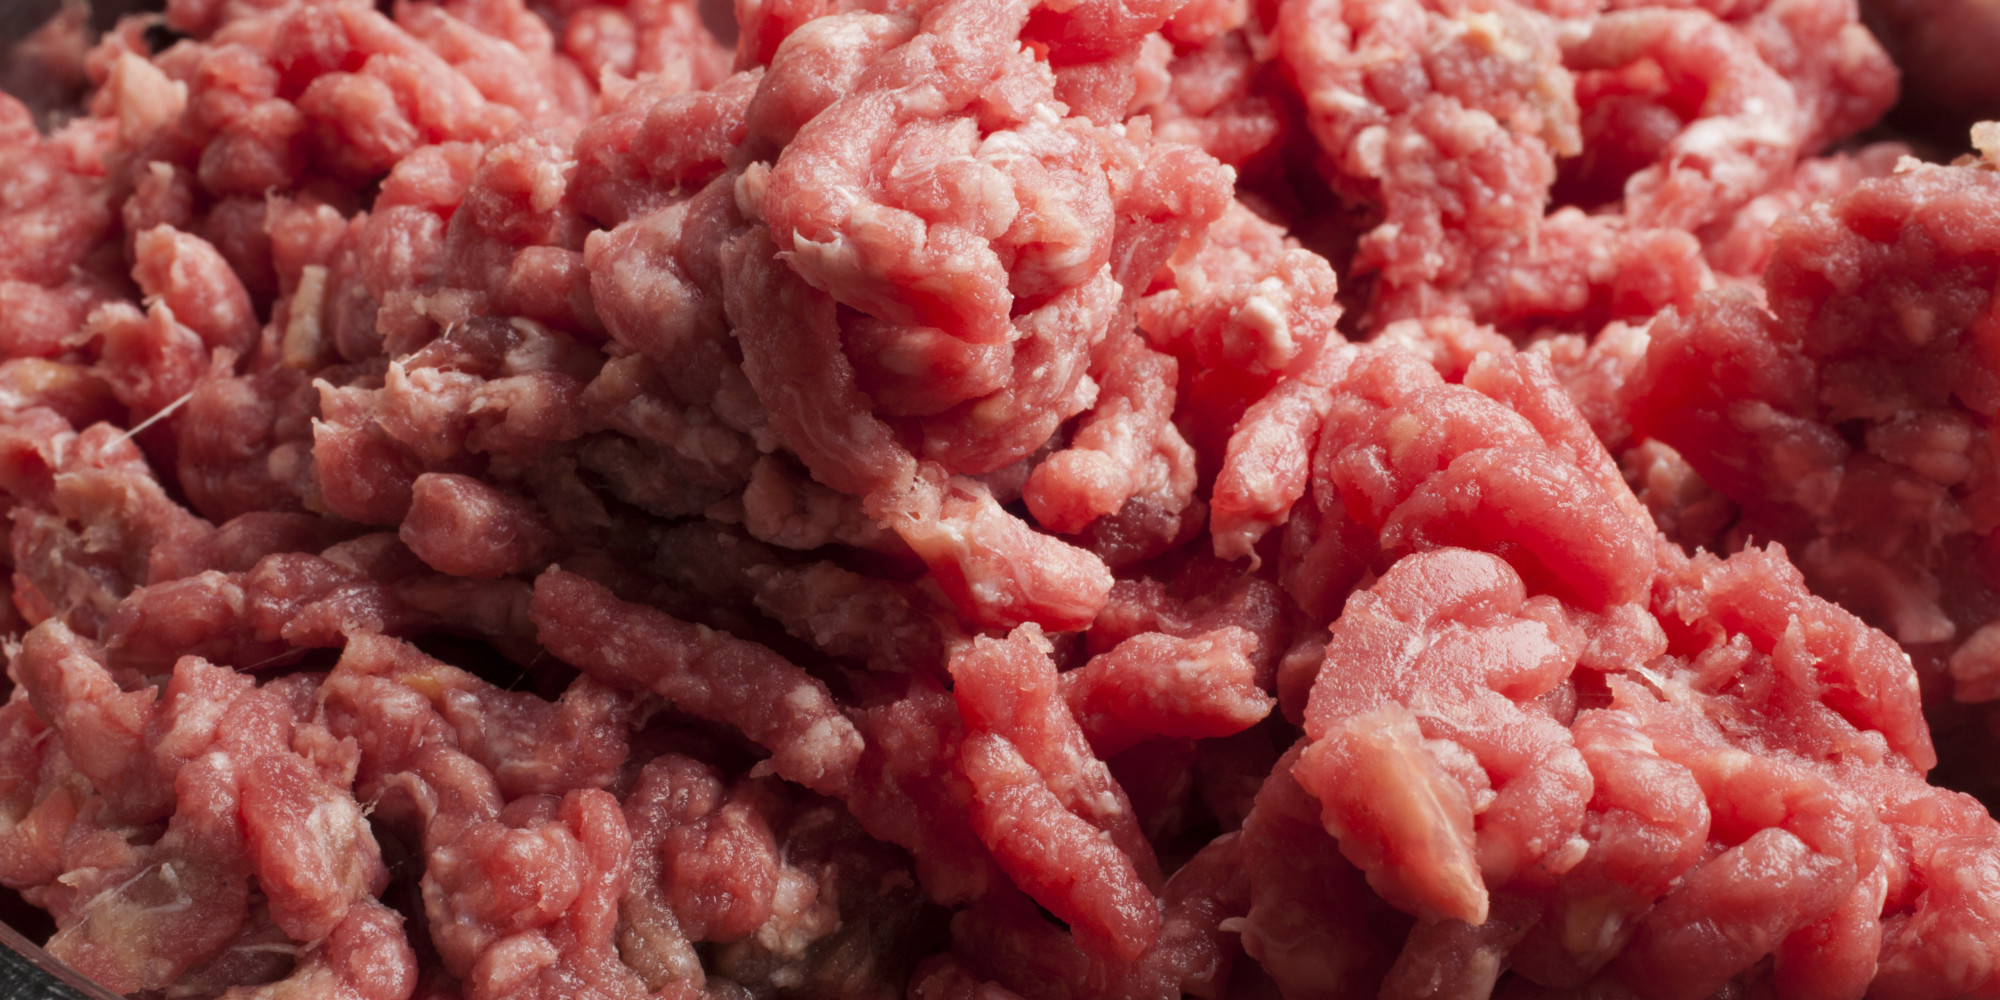 Raw Ground Beef  Cannibal Sandwiches Made Raw Ground Beef Cause Food